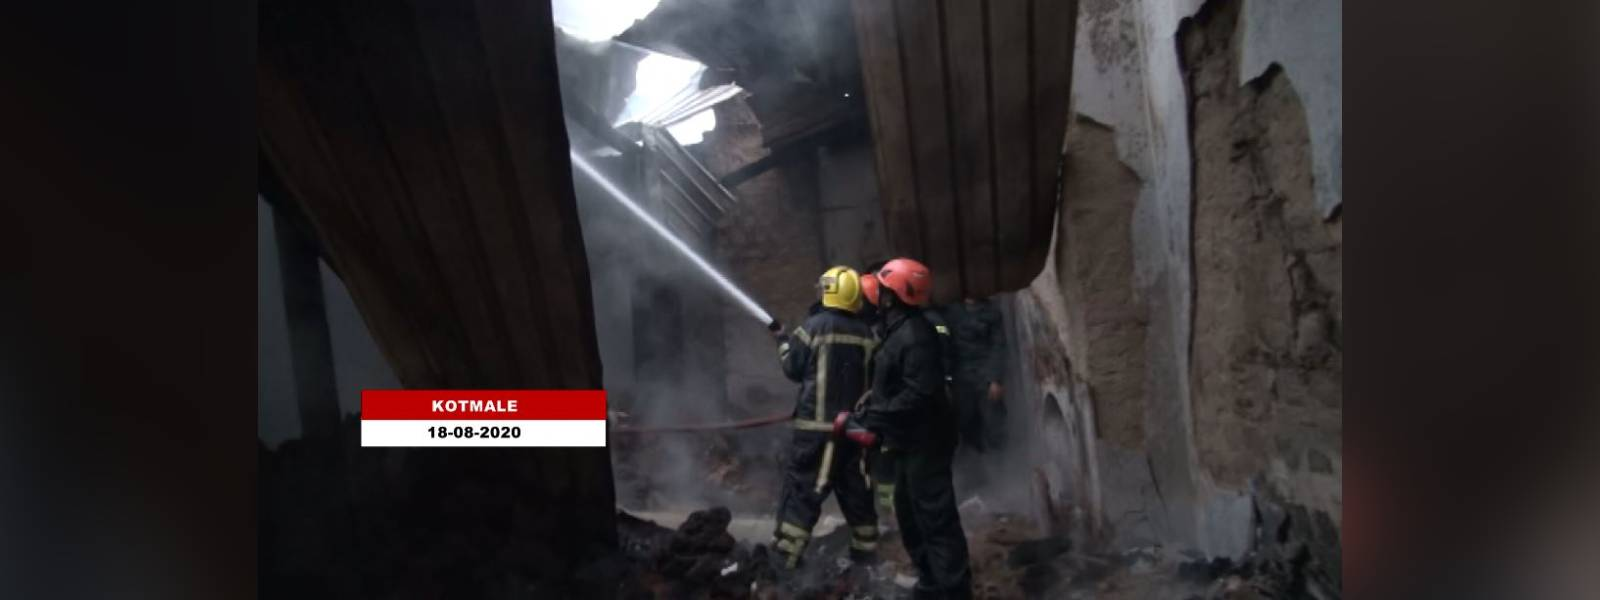 Fire erupts at Jeewan Thondaman's house in Kotmale